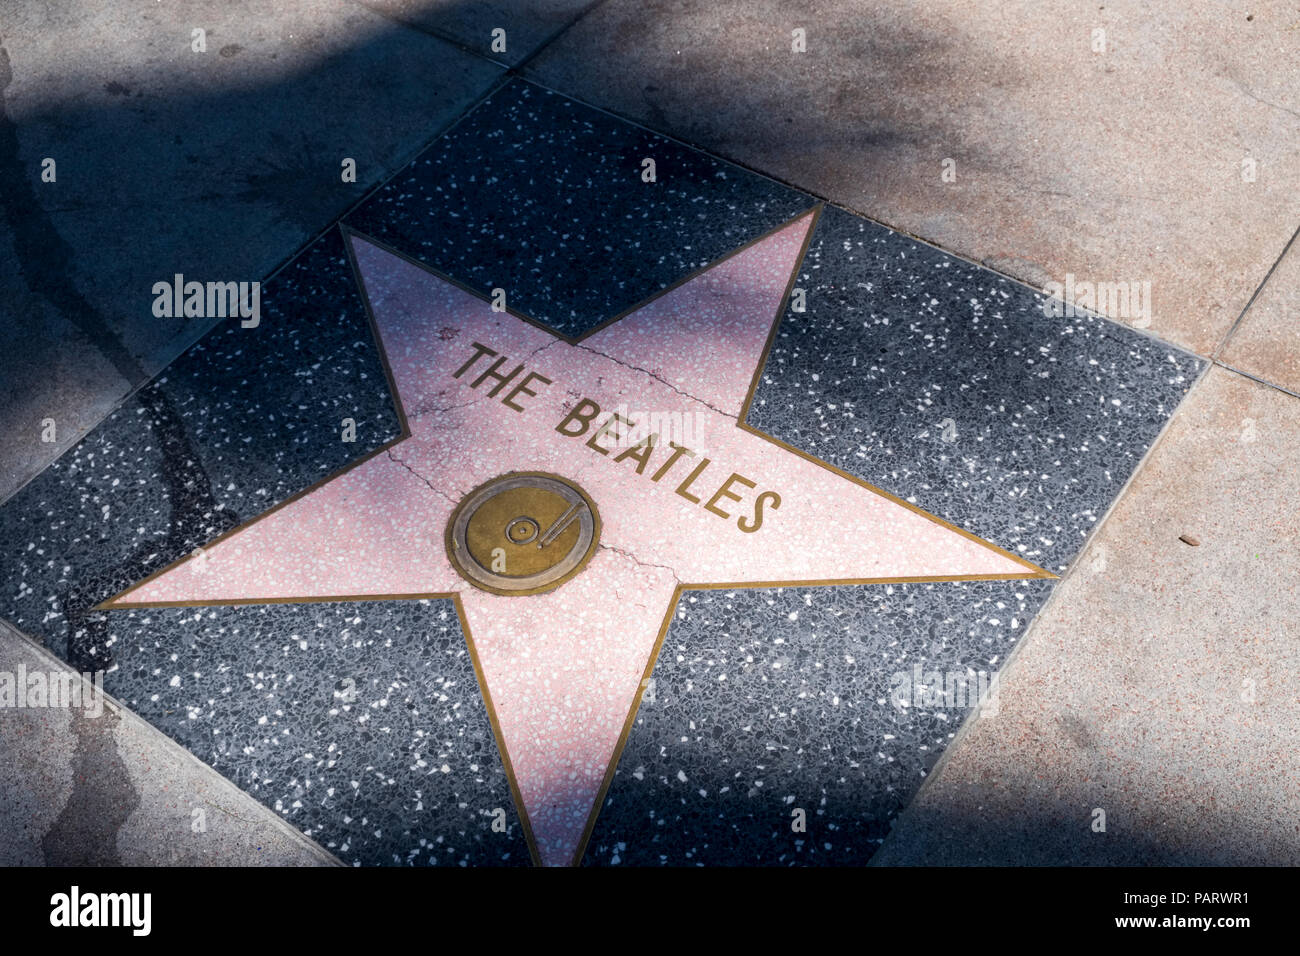 Die Beatles Stern auf dem Walk of Fame, Hollywood Boulevard, Los Angeles, LA, Kalifornien, USA Stockbild